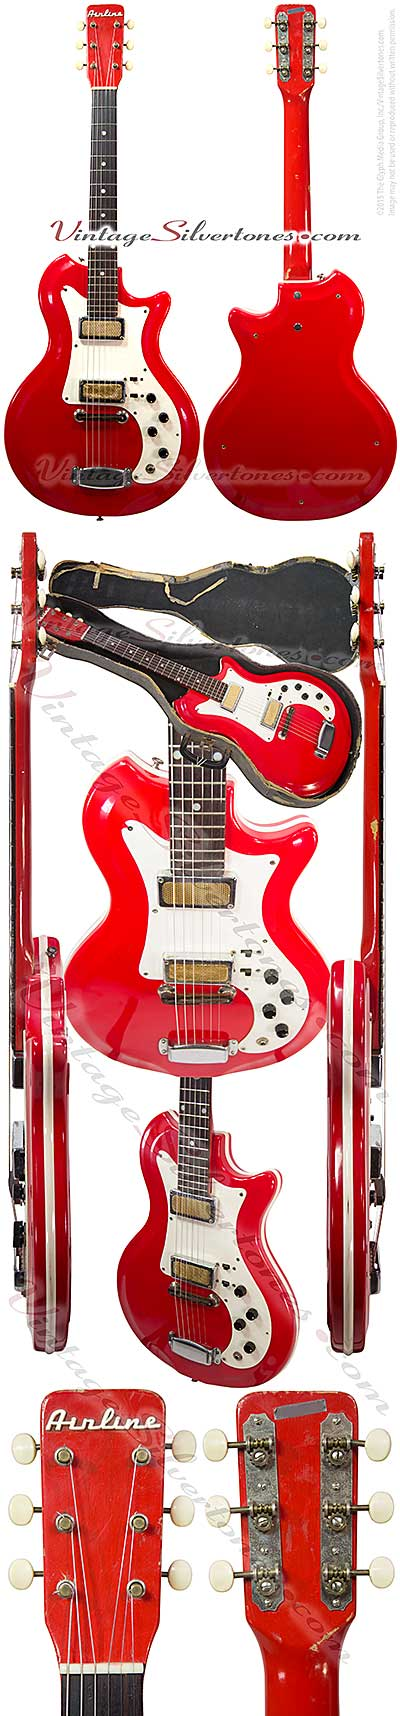 Airline 7270 semi-hollow body electric guitar 2 gold foil pickups, red finish, made by National, Supro, Valco in Chicago 1965, res-o-glass